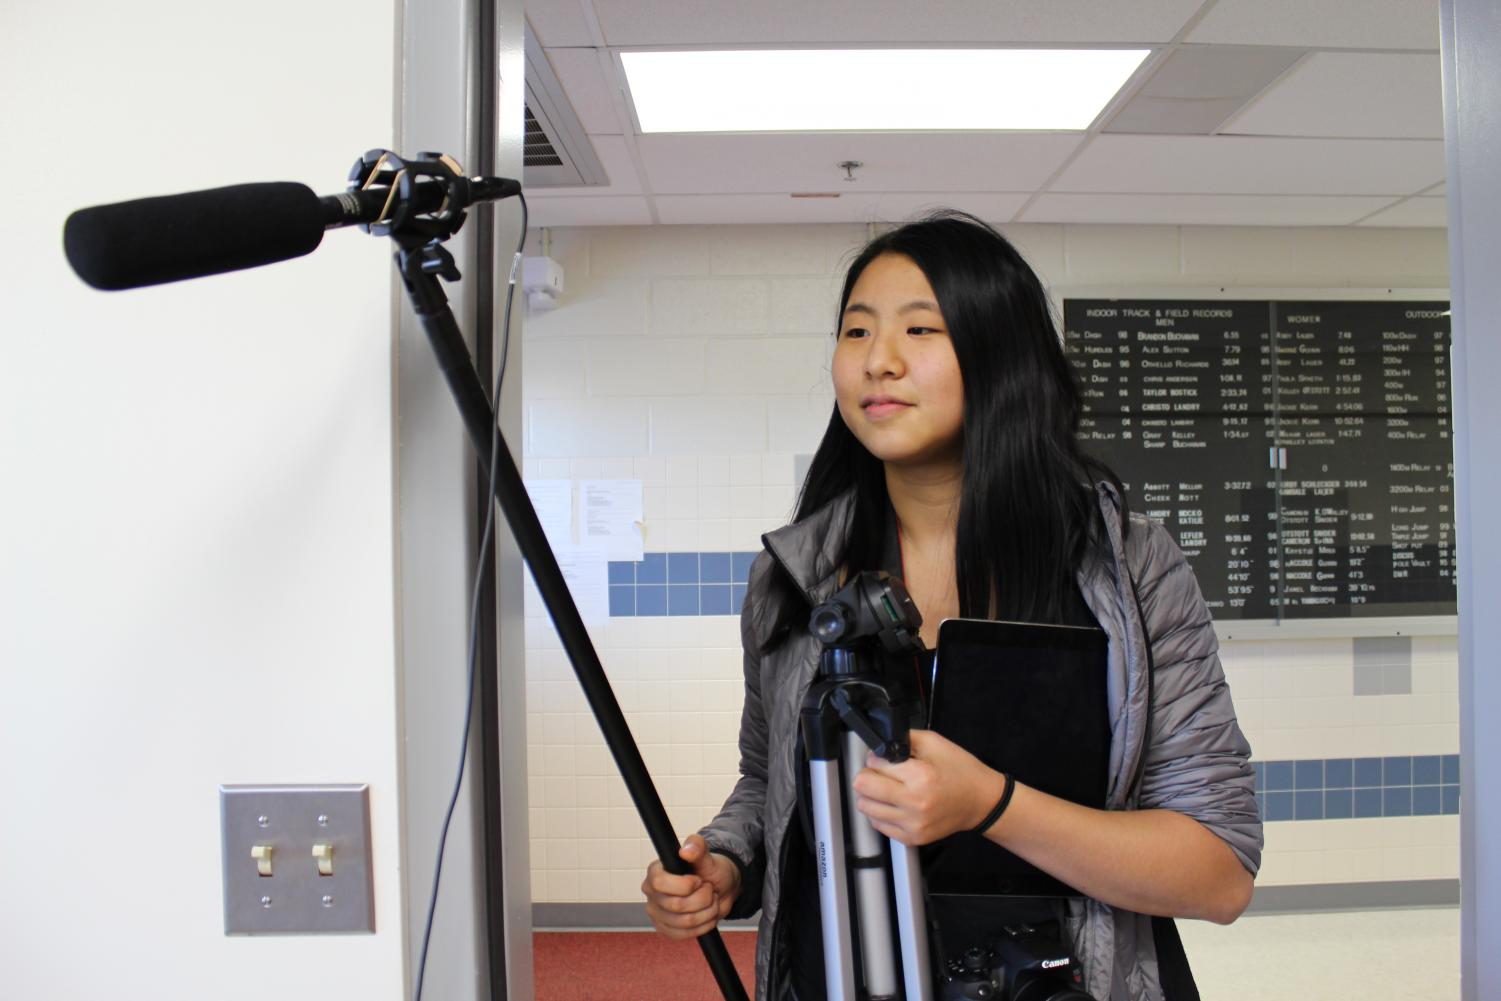 Carrying a <em>tjTV</em> tripod and microphone, Virginia Student Journalist of the Year Christine Zhao walks into the security room at Thomas Jefferson High School. Zhao was was preparing to interview security employee Charles Phillips for an online series on the stories of African-American students and staff.